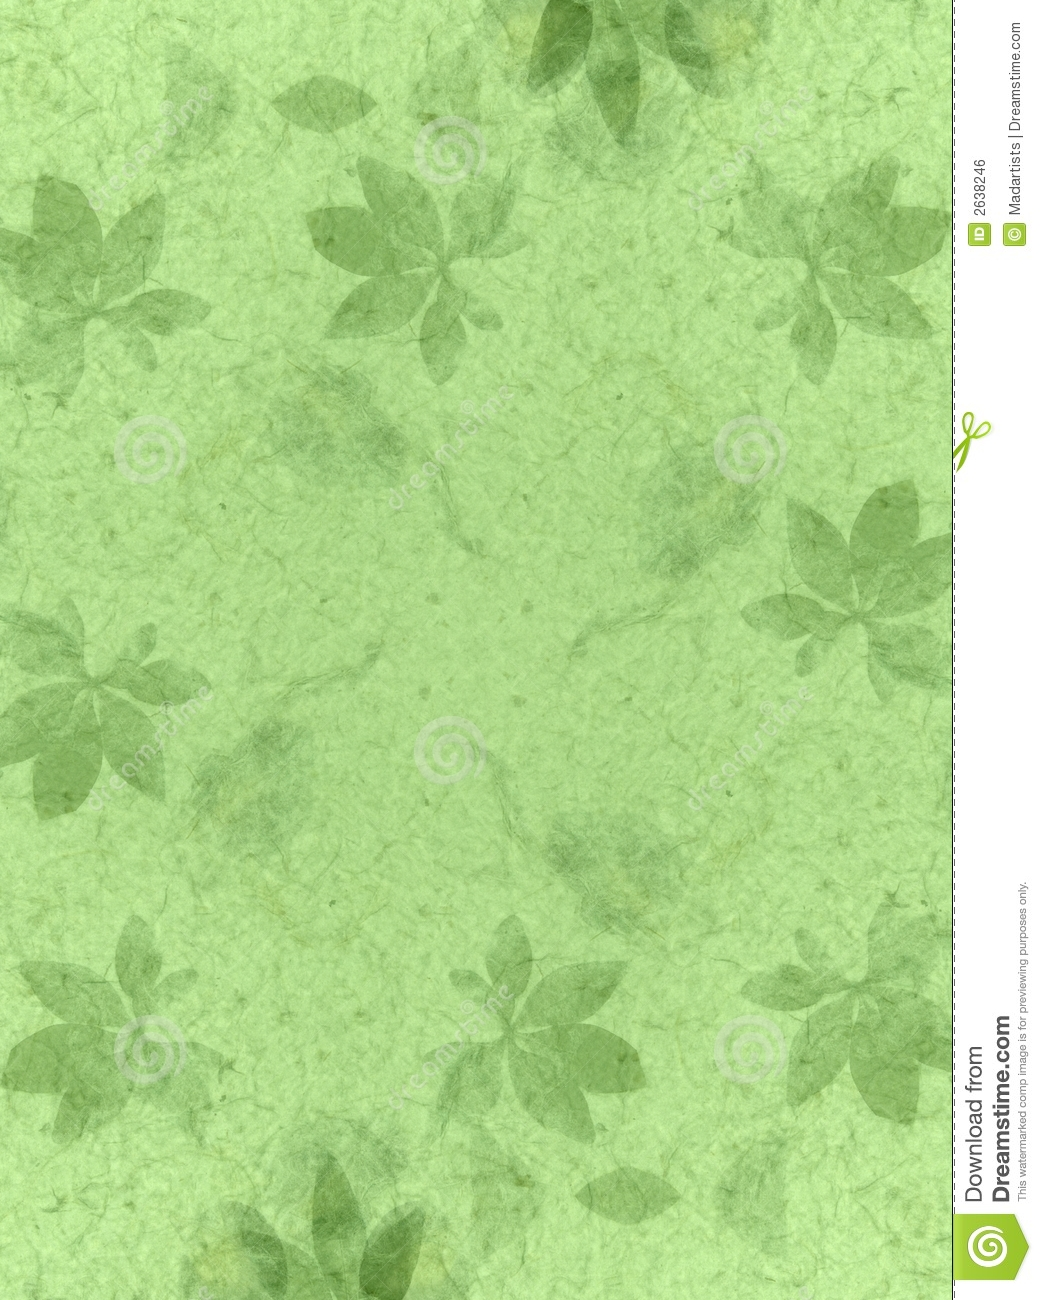 Handmade Paper Texture Green Royalty Free Stock Image ...